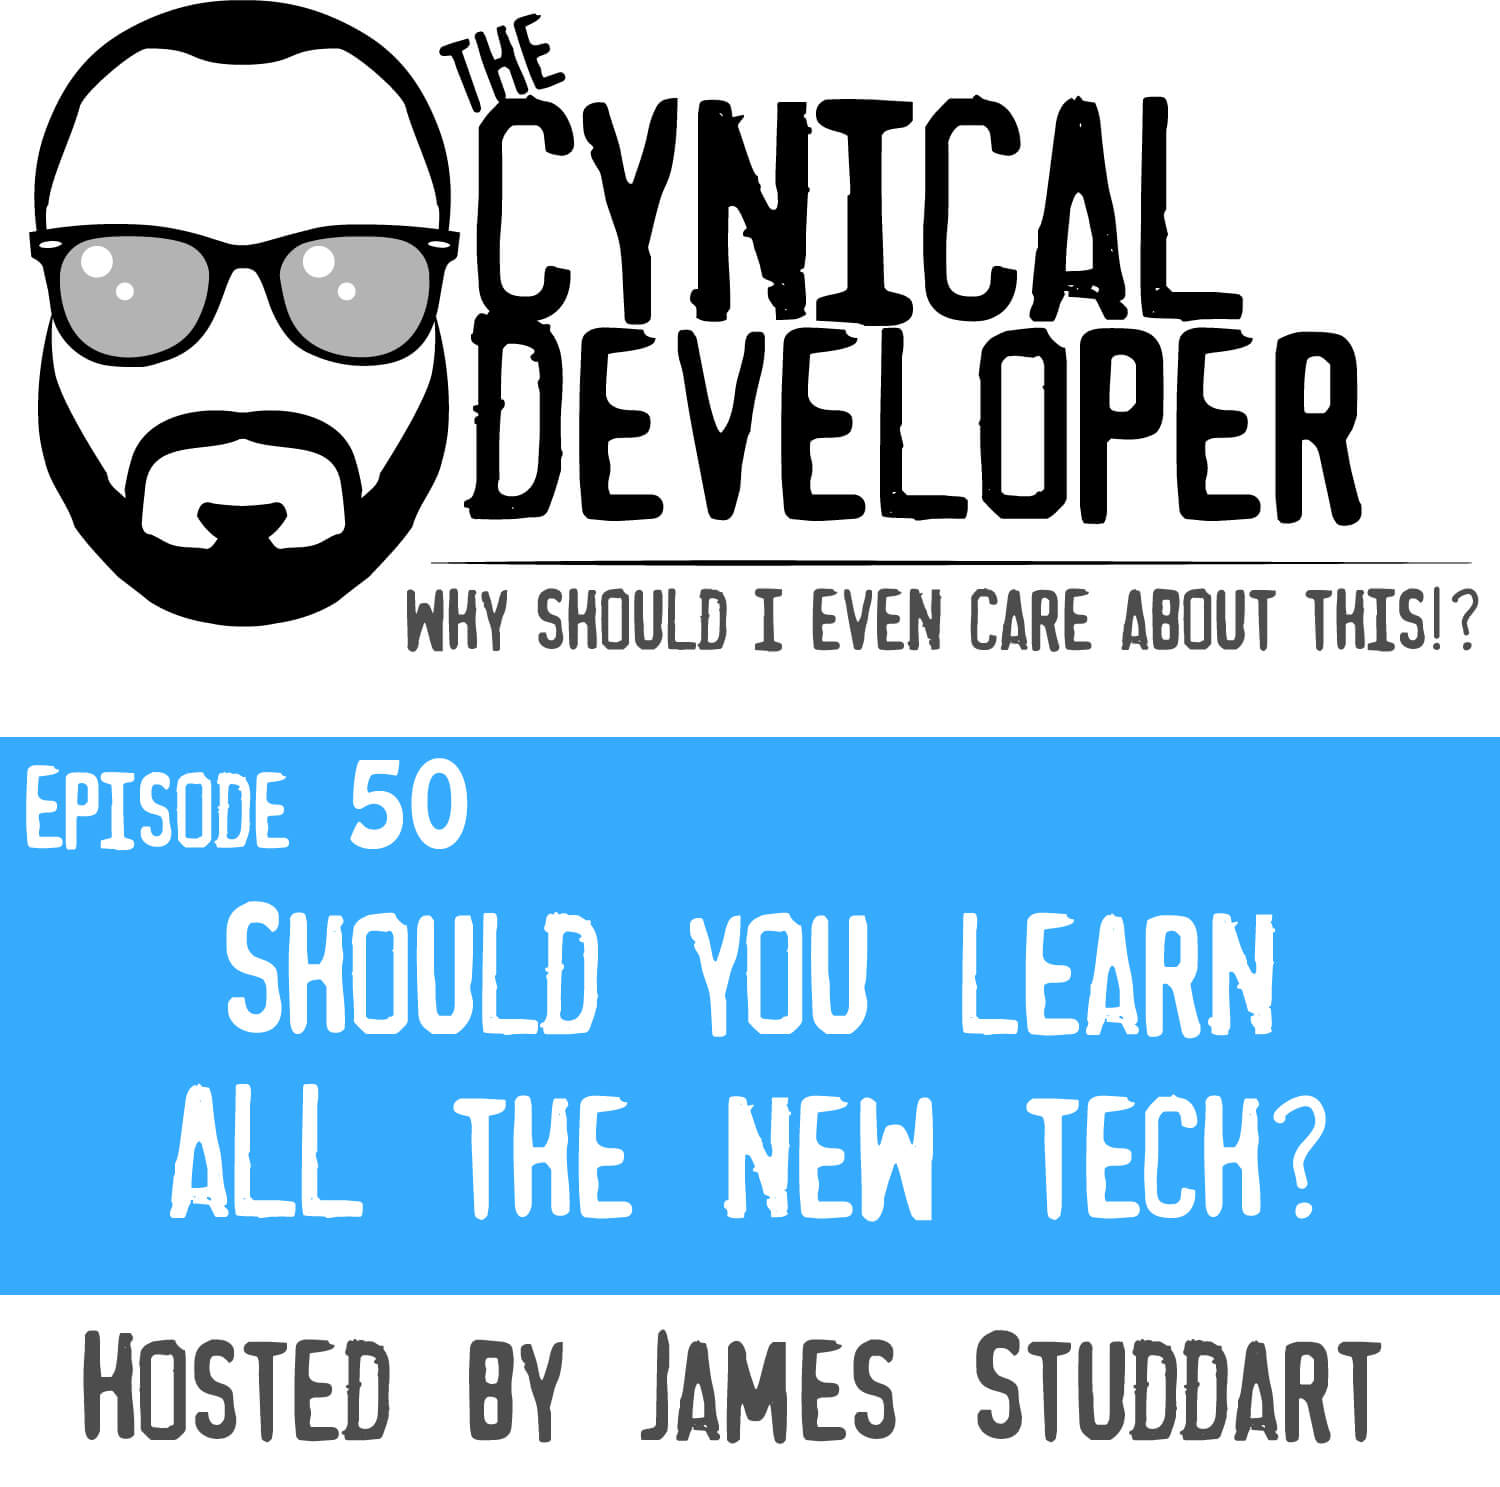 Episode 50 - Should you learn ALL the new tech?